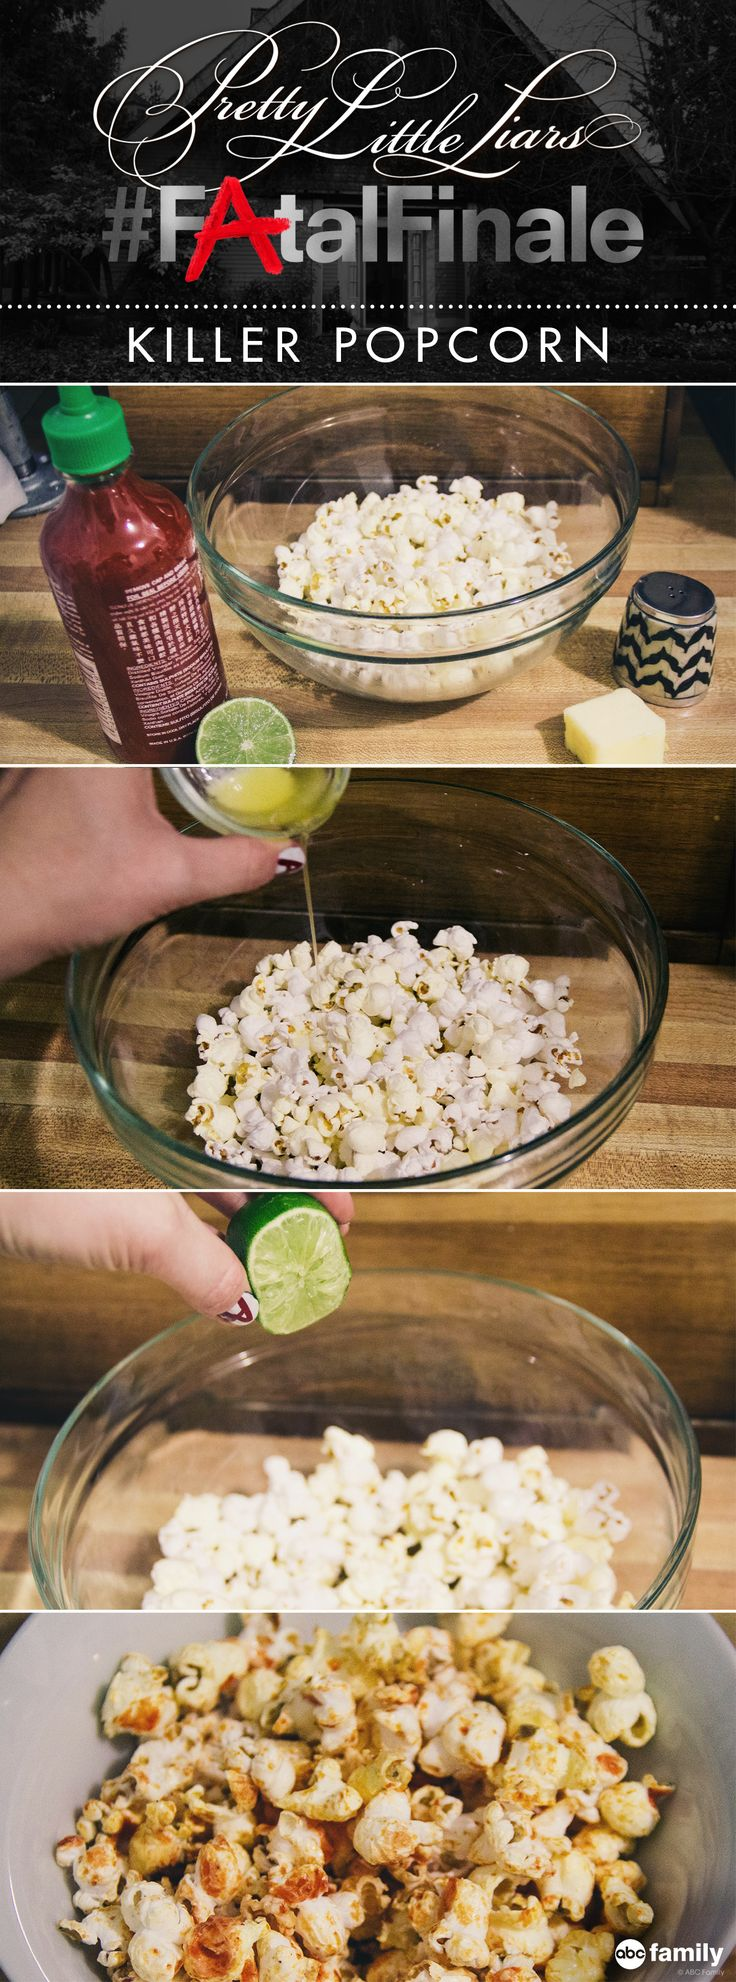 "Our ""Killer"" popcorn only requires five ingredients, and the recipe is a breeze: Pop a ½ Cup Popcorn Kernels, Pour 2 Tbsp melted butter, 1 Tbsp lime juice, and ¼ cup hot sauce over the popcorn, and salt to taste. Enjoy while you watch the PLL Fatal Finale Tuesday, August 26, 2014 at 8/7c on ABC Family!"